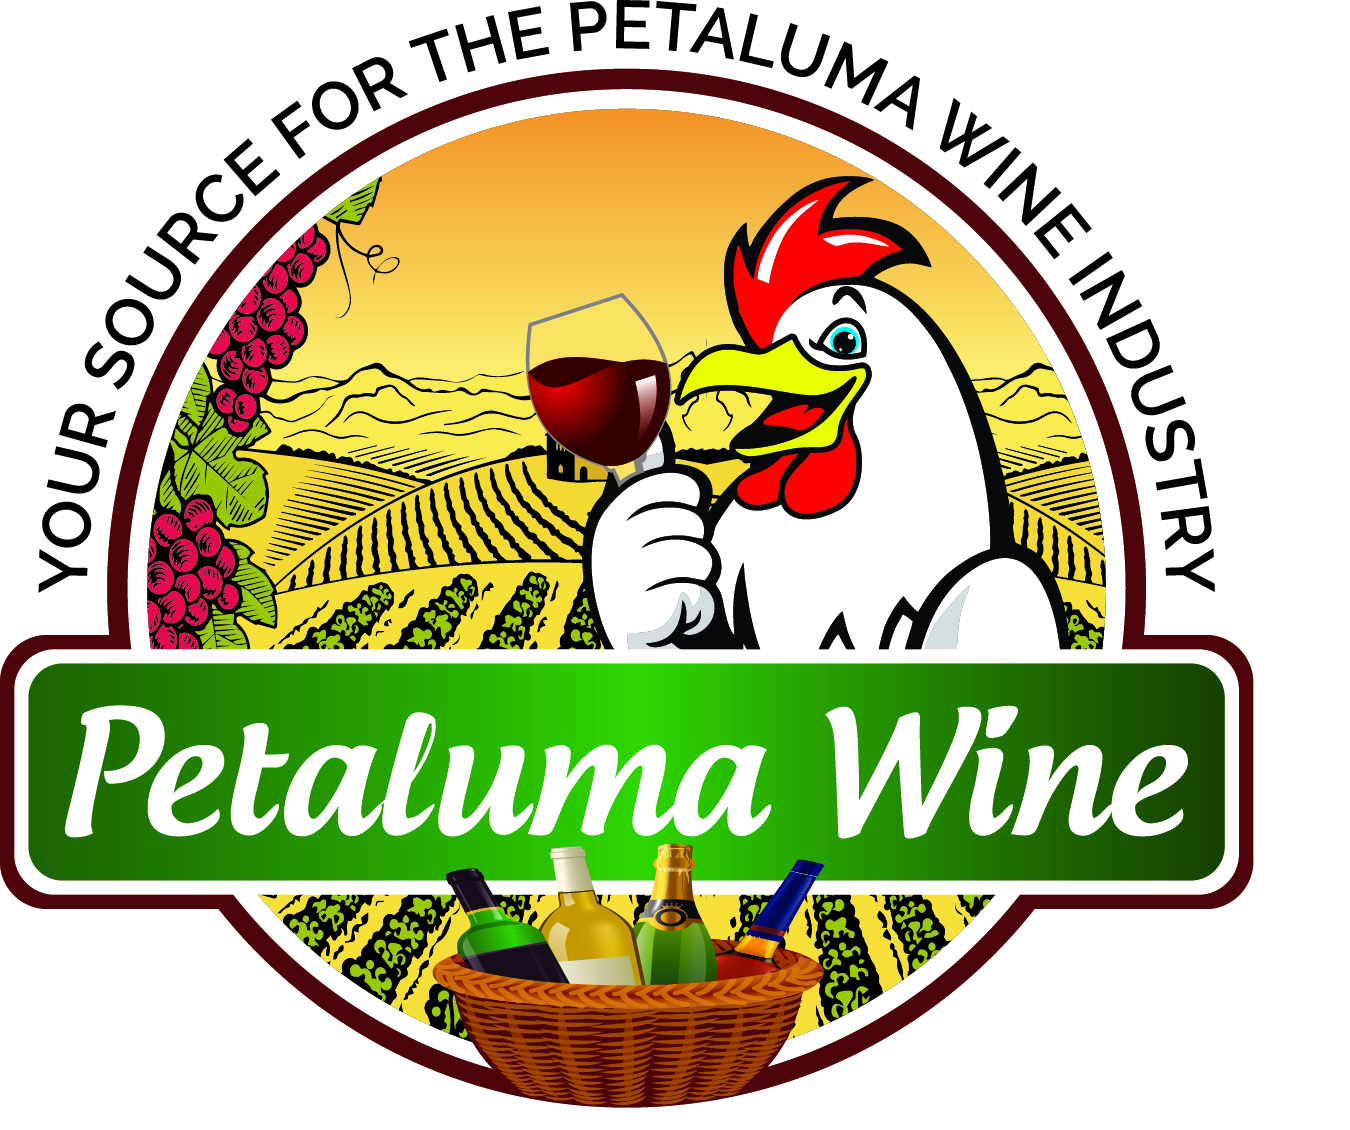 Check Out What's New On Petalumawine.com